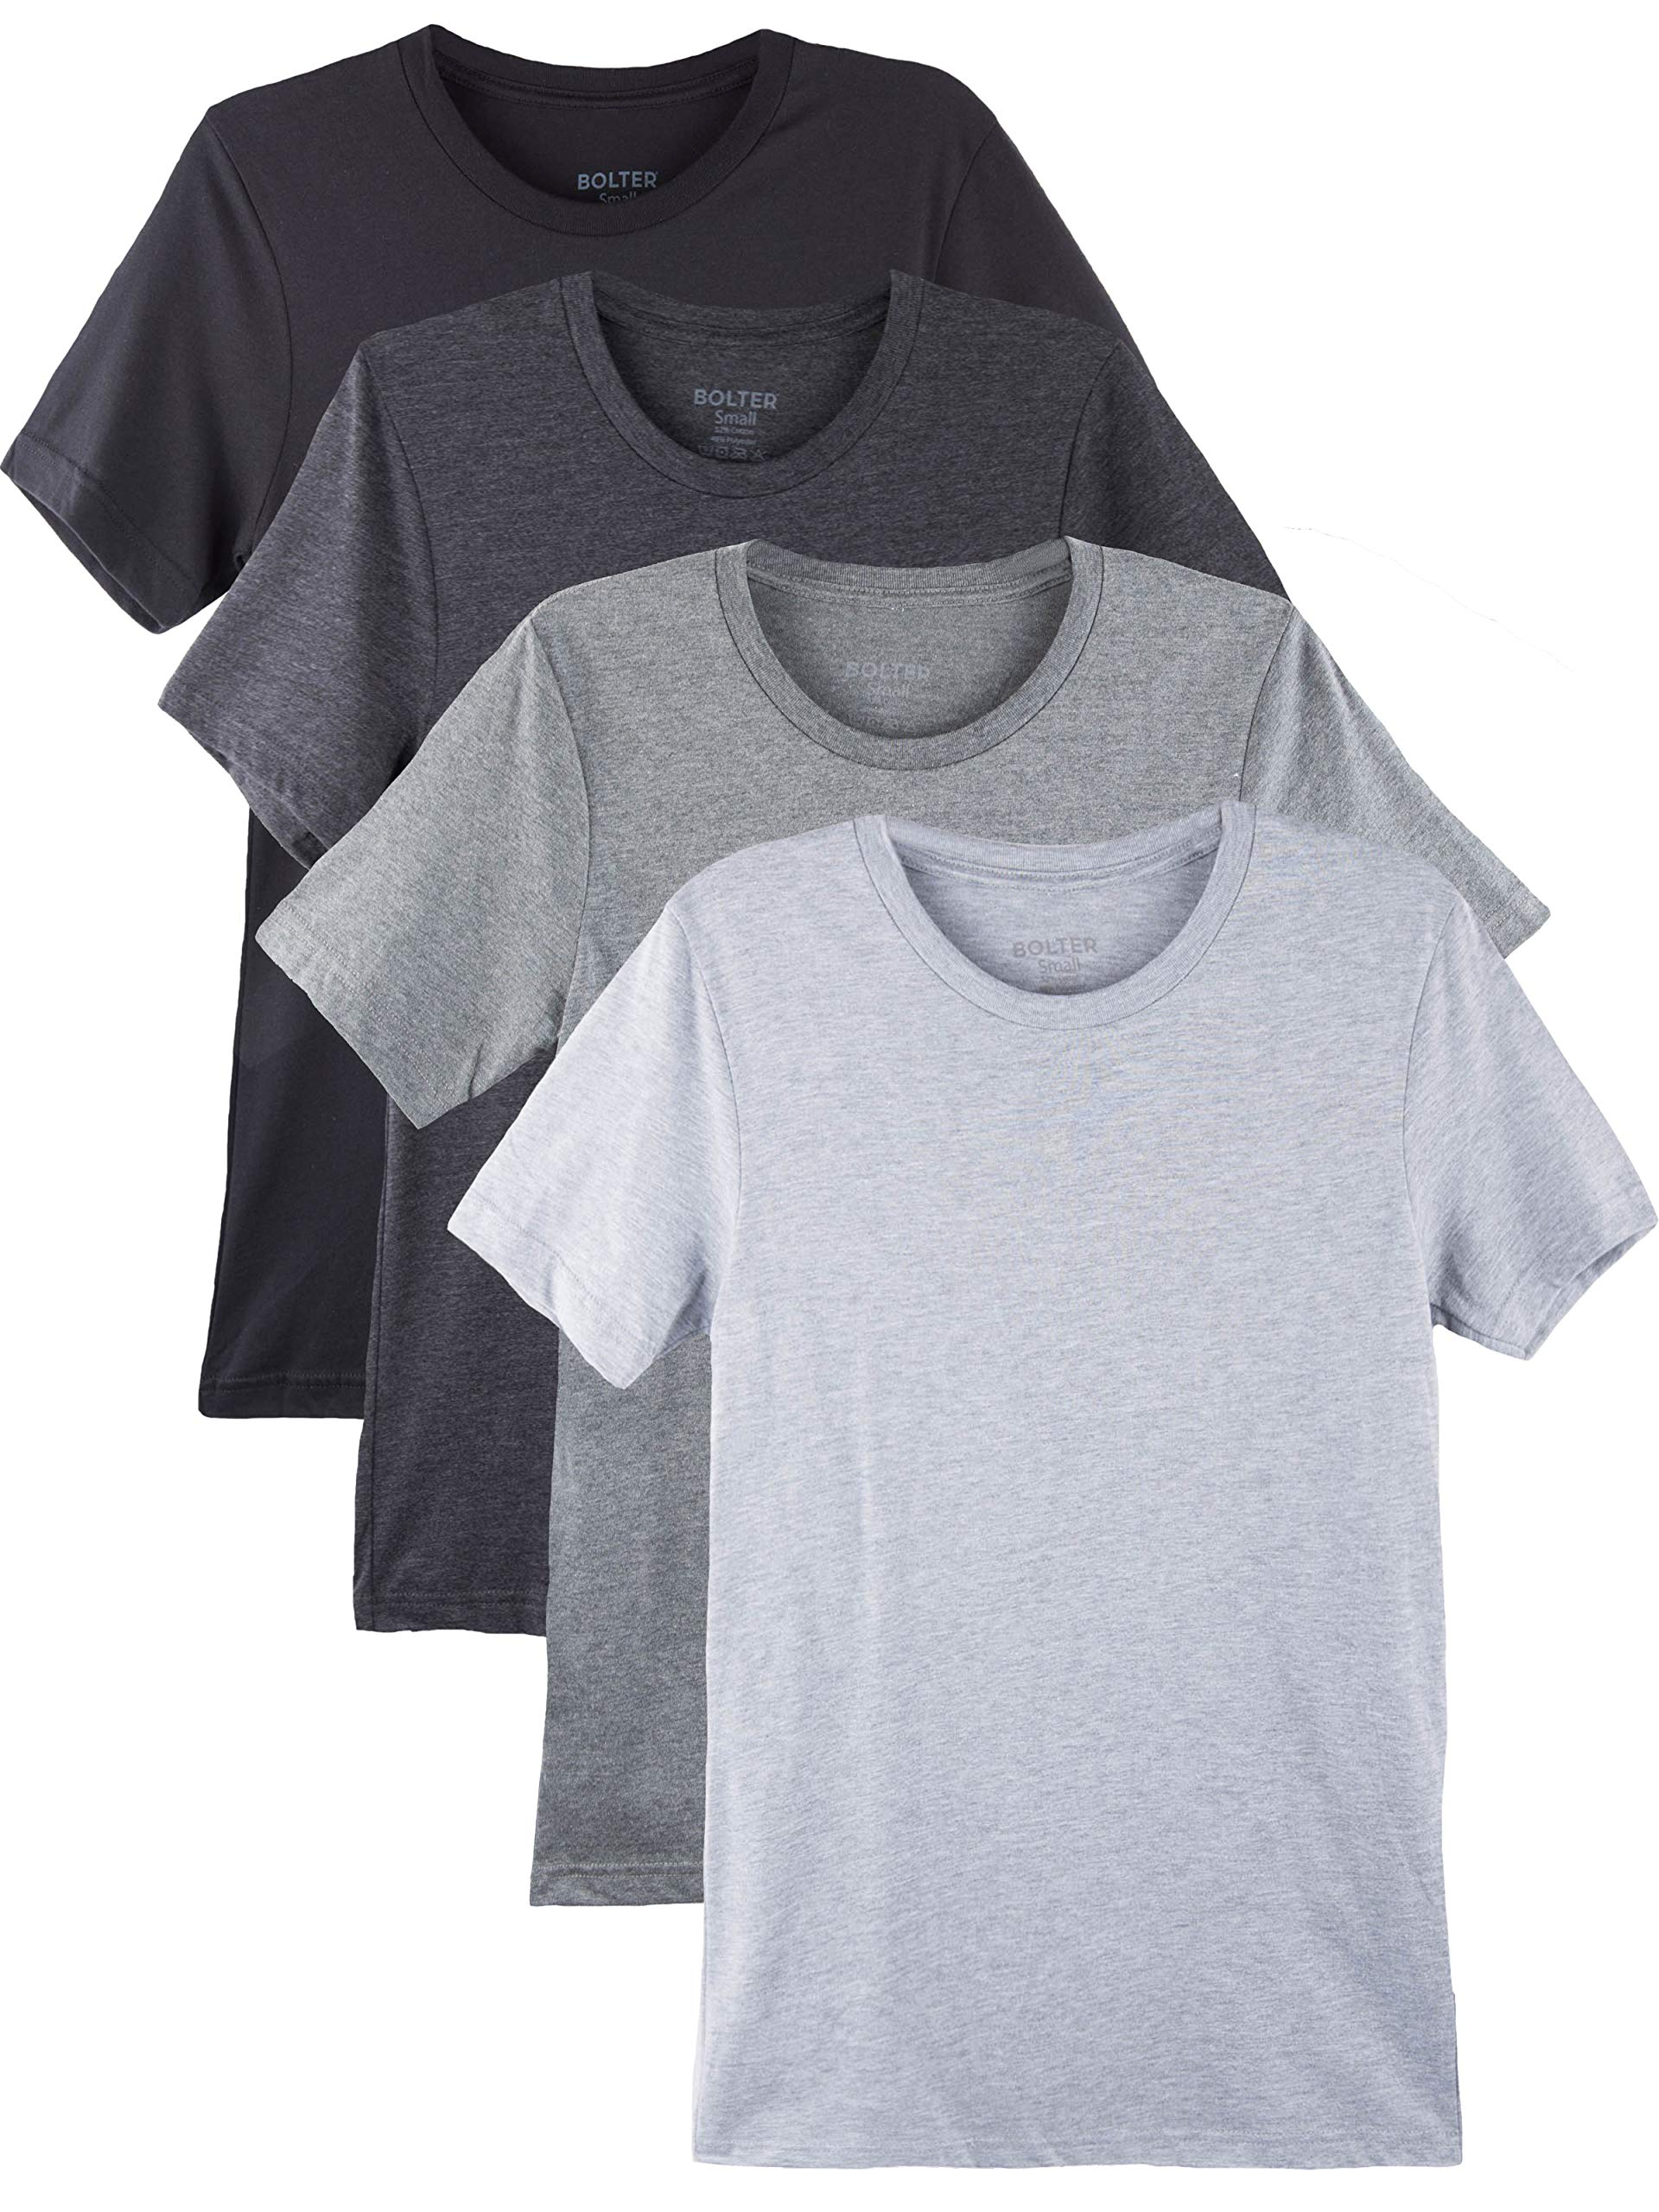 Bolter 4 Pack Men's Everyday Cotton Blend Short Sleeve T-Shirt (Medium, Blk/H.Greys)